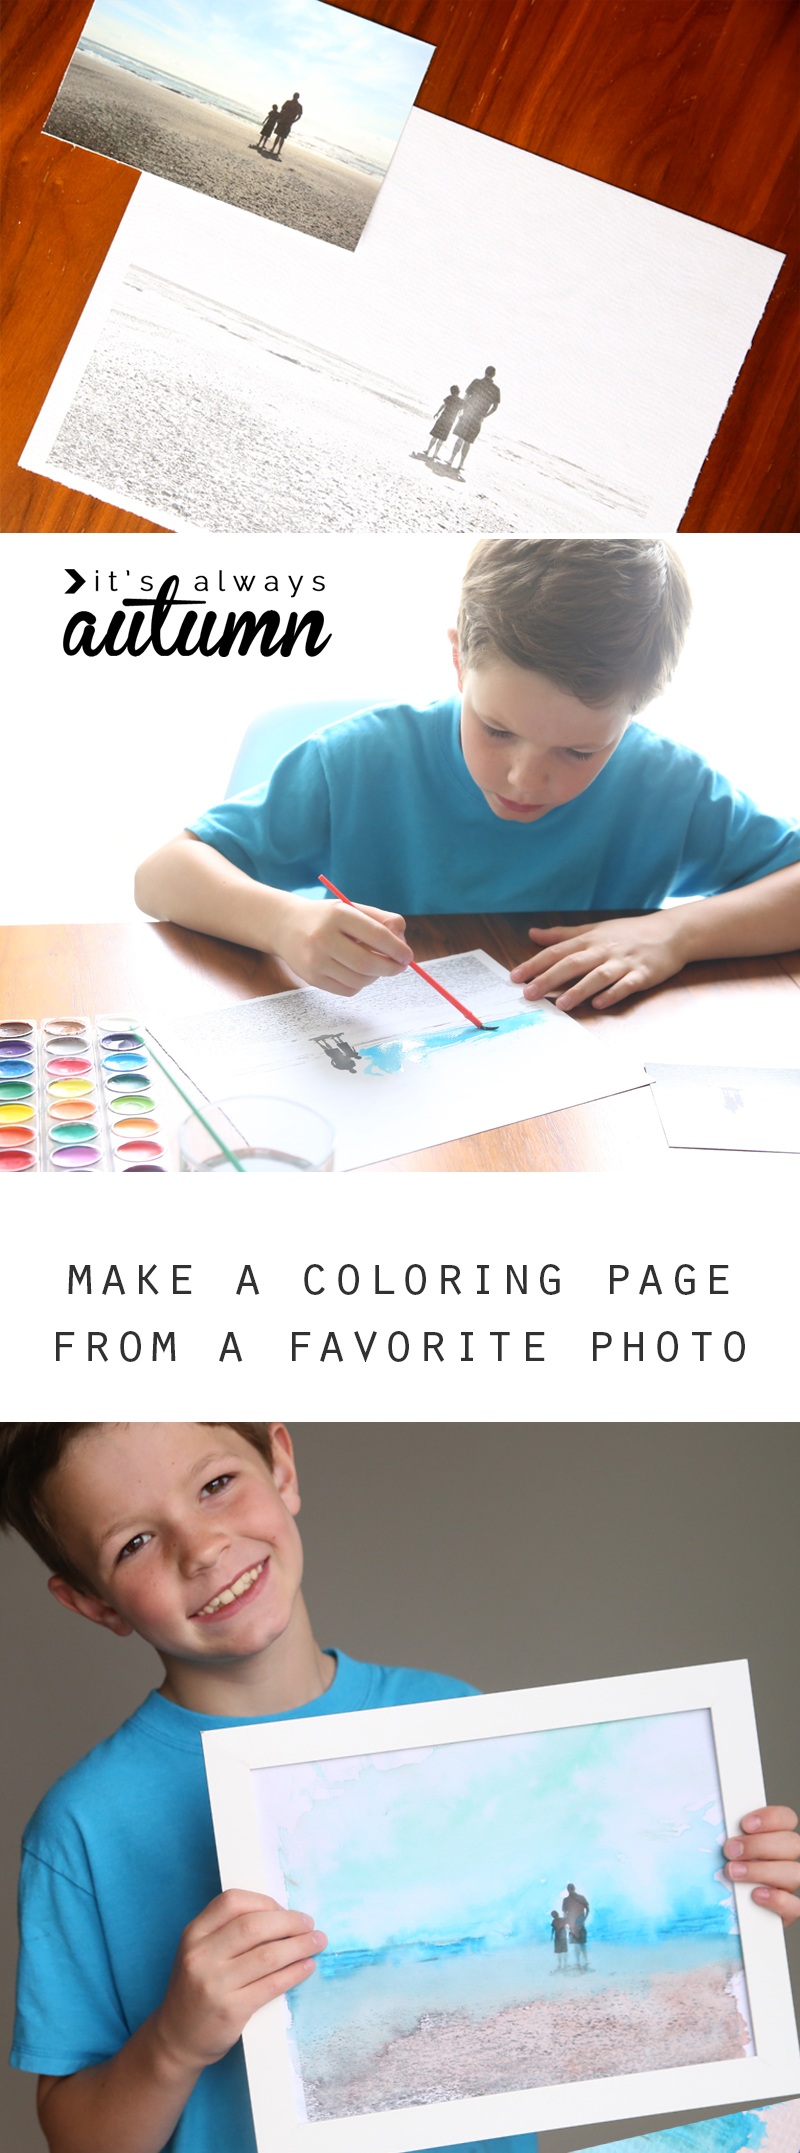 This is completely awesome: you can turn any photo into a personalized coloring page for your kids! What a fun summer activity.